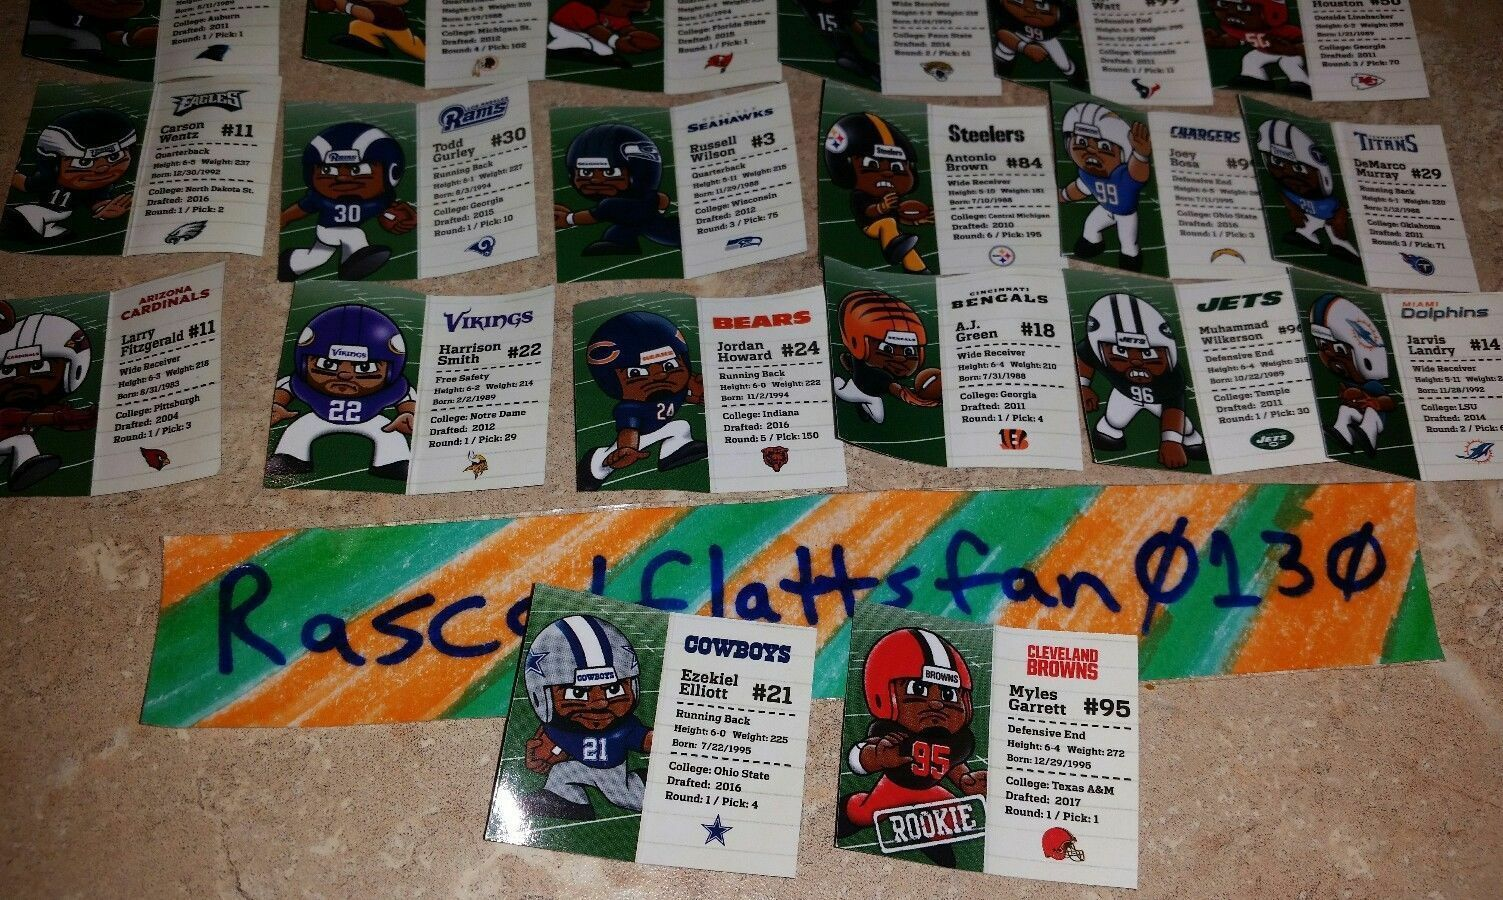 NFL FOOTBALL TEENYMATES SERIES 6 COMPLETE SET OF 32 PLAYER PROFILE CARDS!!! 2017